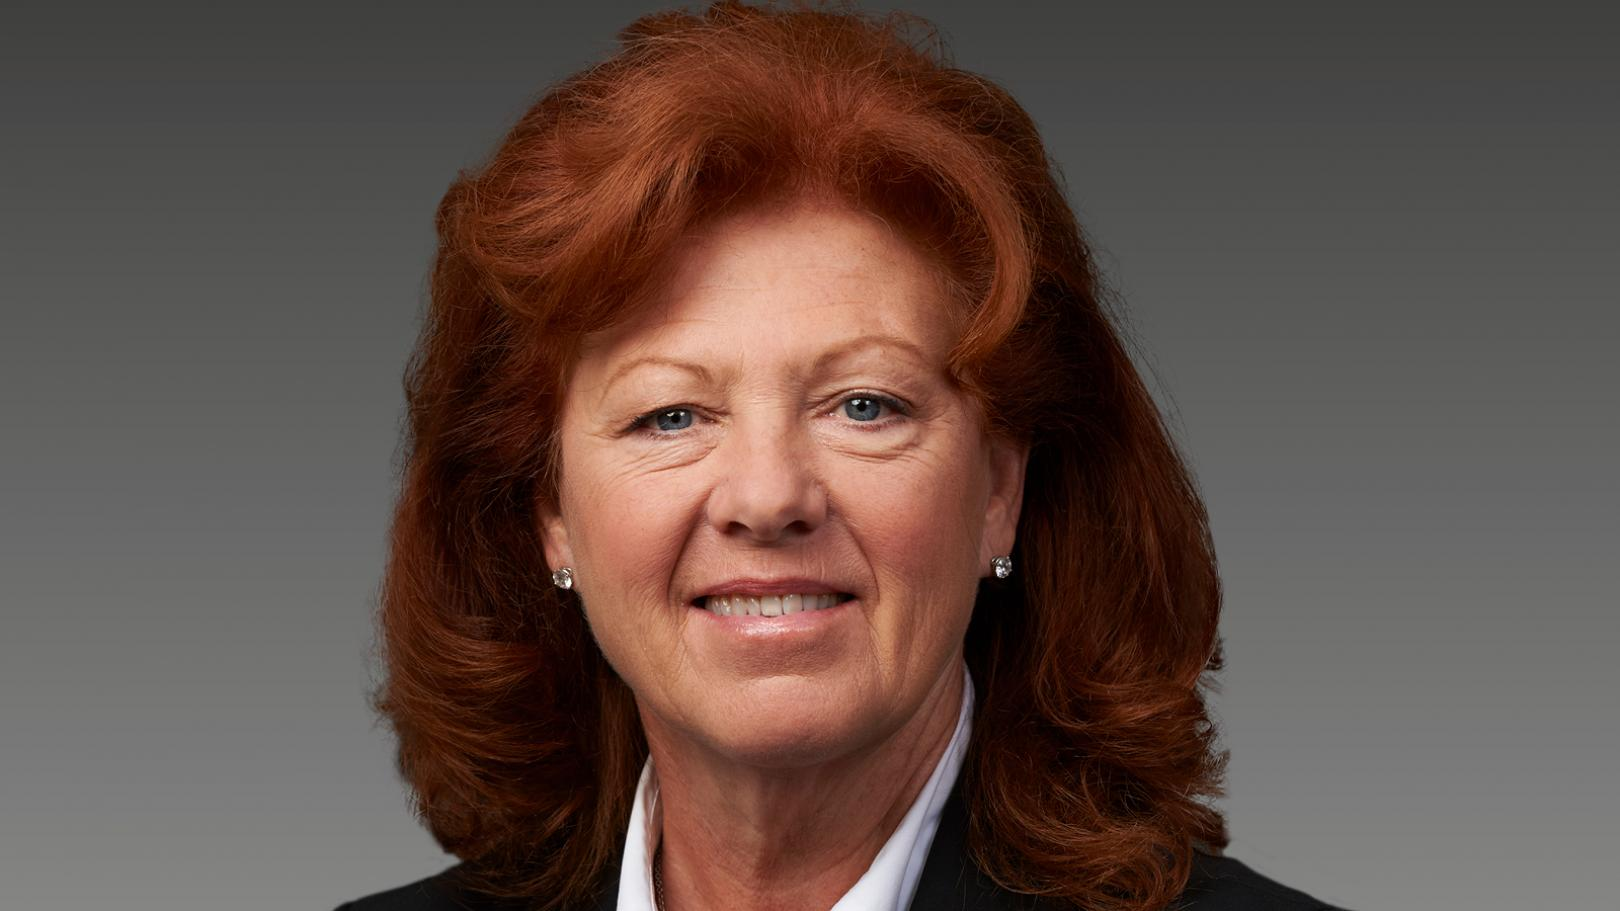 Ginger L. Graham, Former President & CEO, Amylin Pharmaceuticals